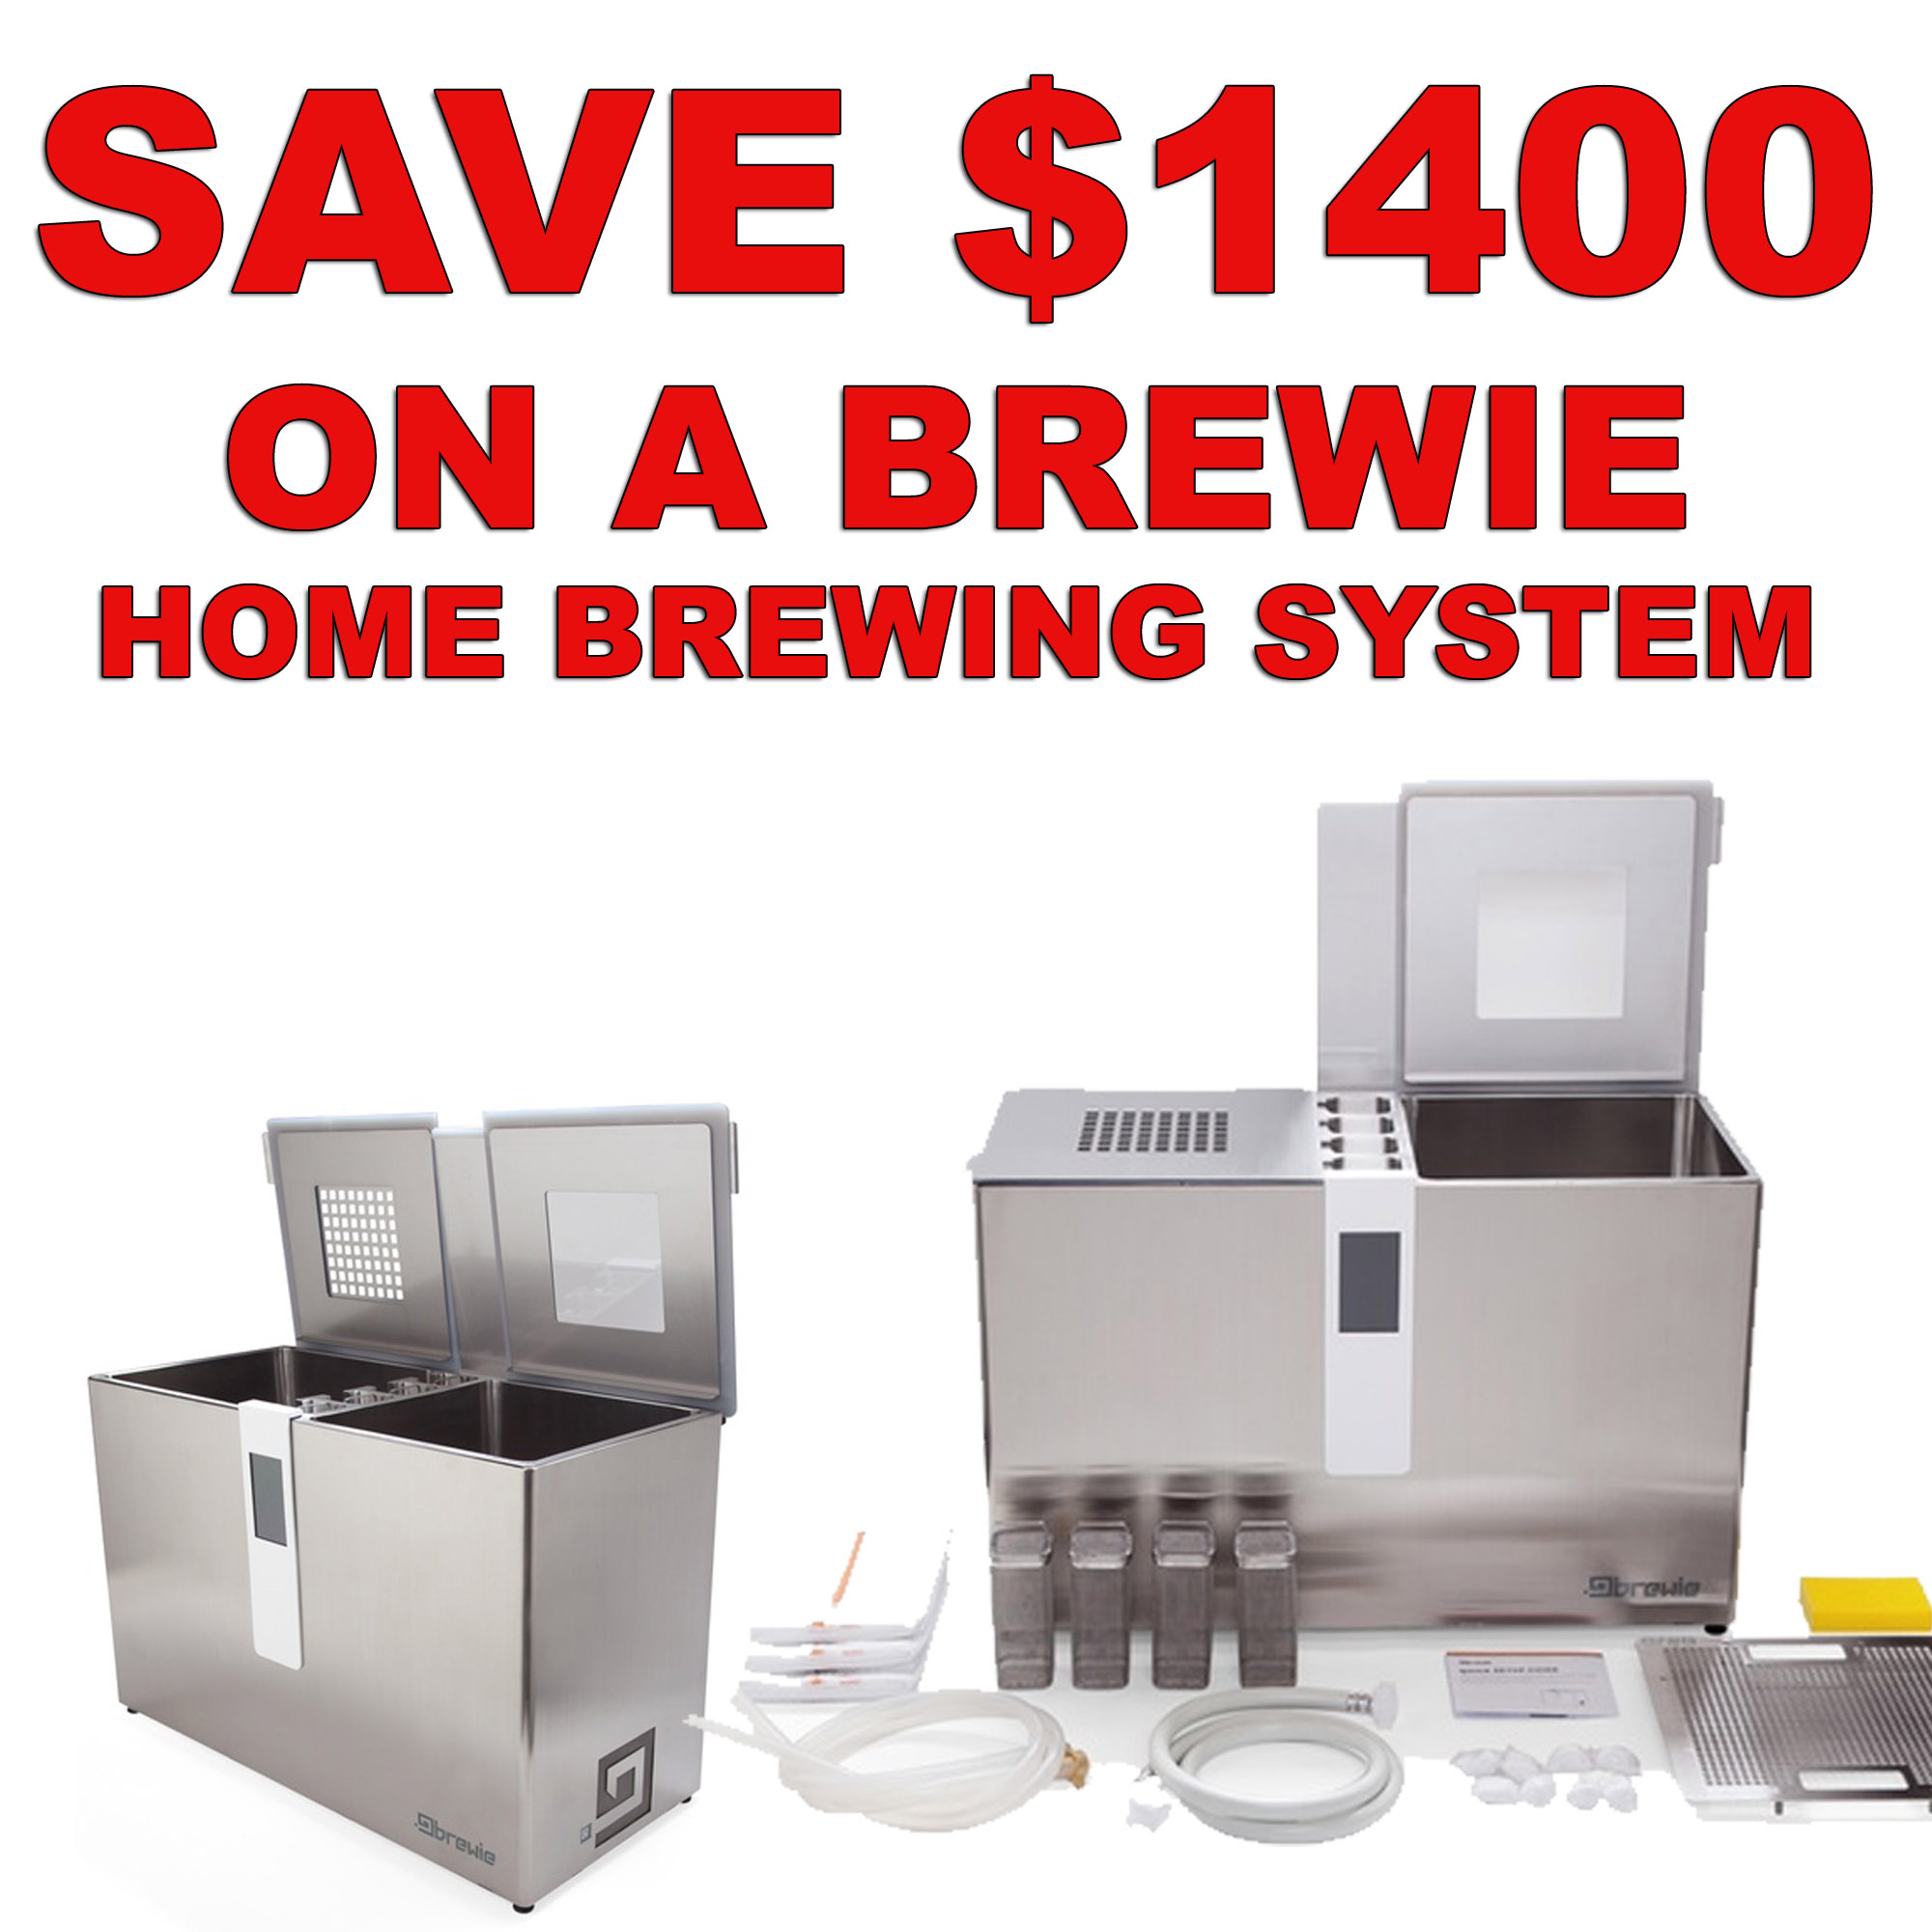 MoreBeer Save $1,400 On A Brewie Home Brewing System MoreBeer Black Friday promo code BEERDEAL Coupon Code